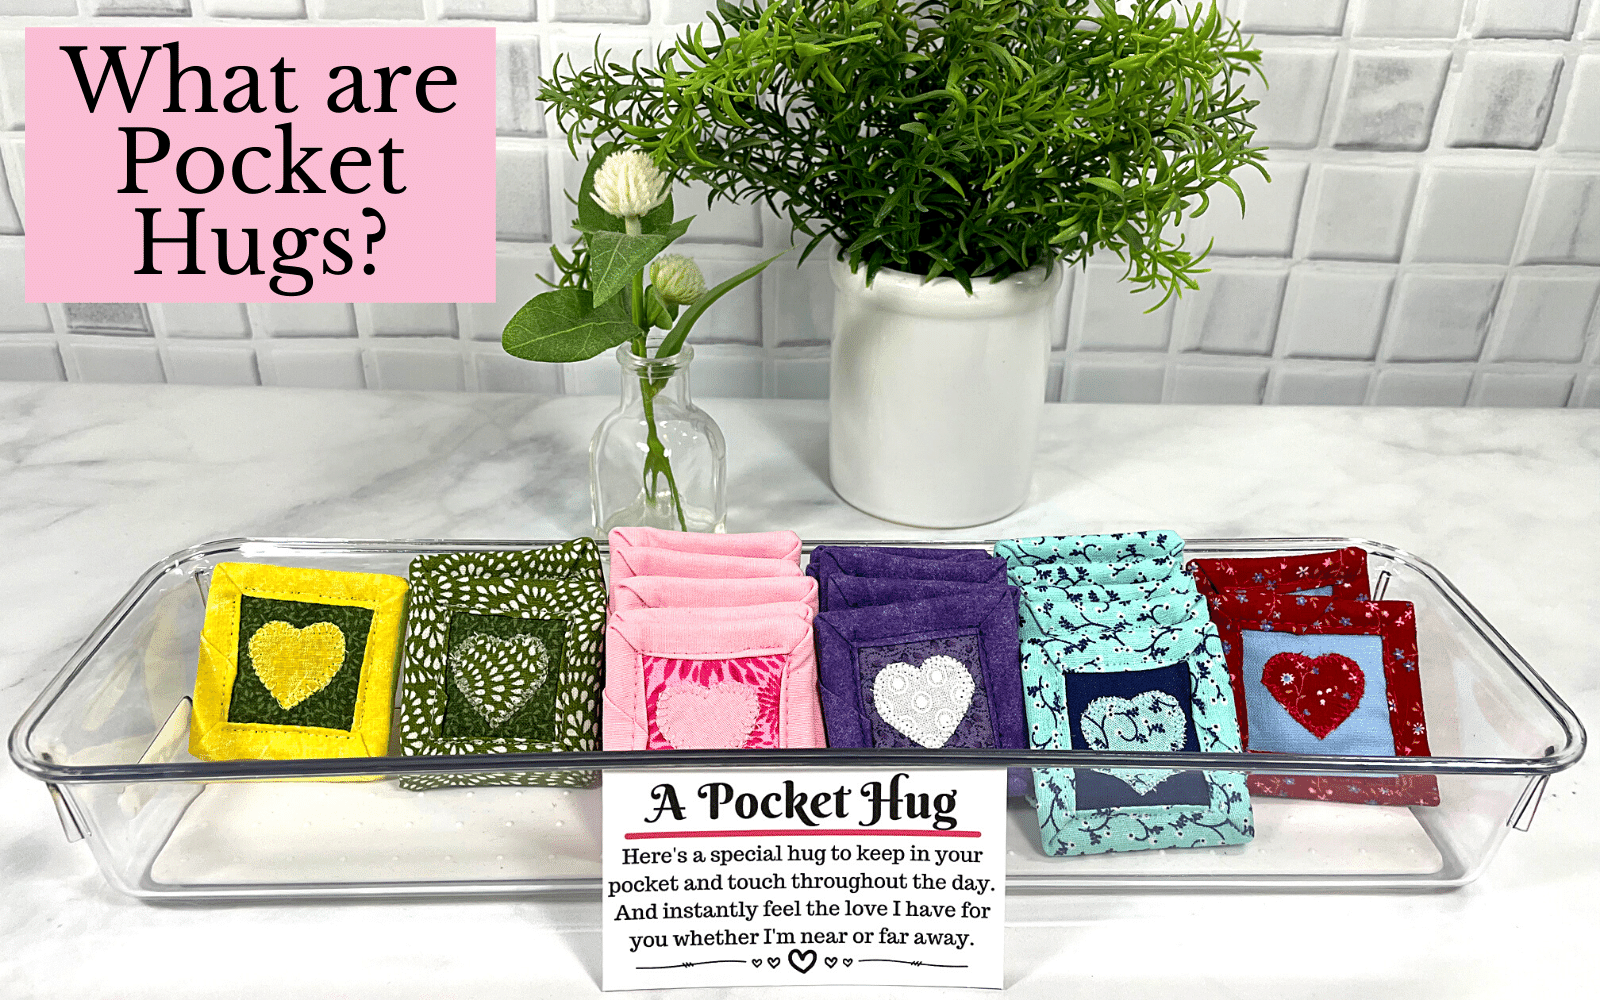 Pocket hugs make a great gift for the one you love.  Kids, the elderly and any age in between would love receiving a token of your love.  Each one comes with a poem card too.